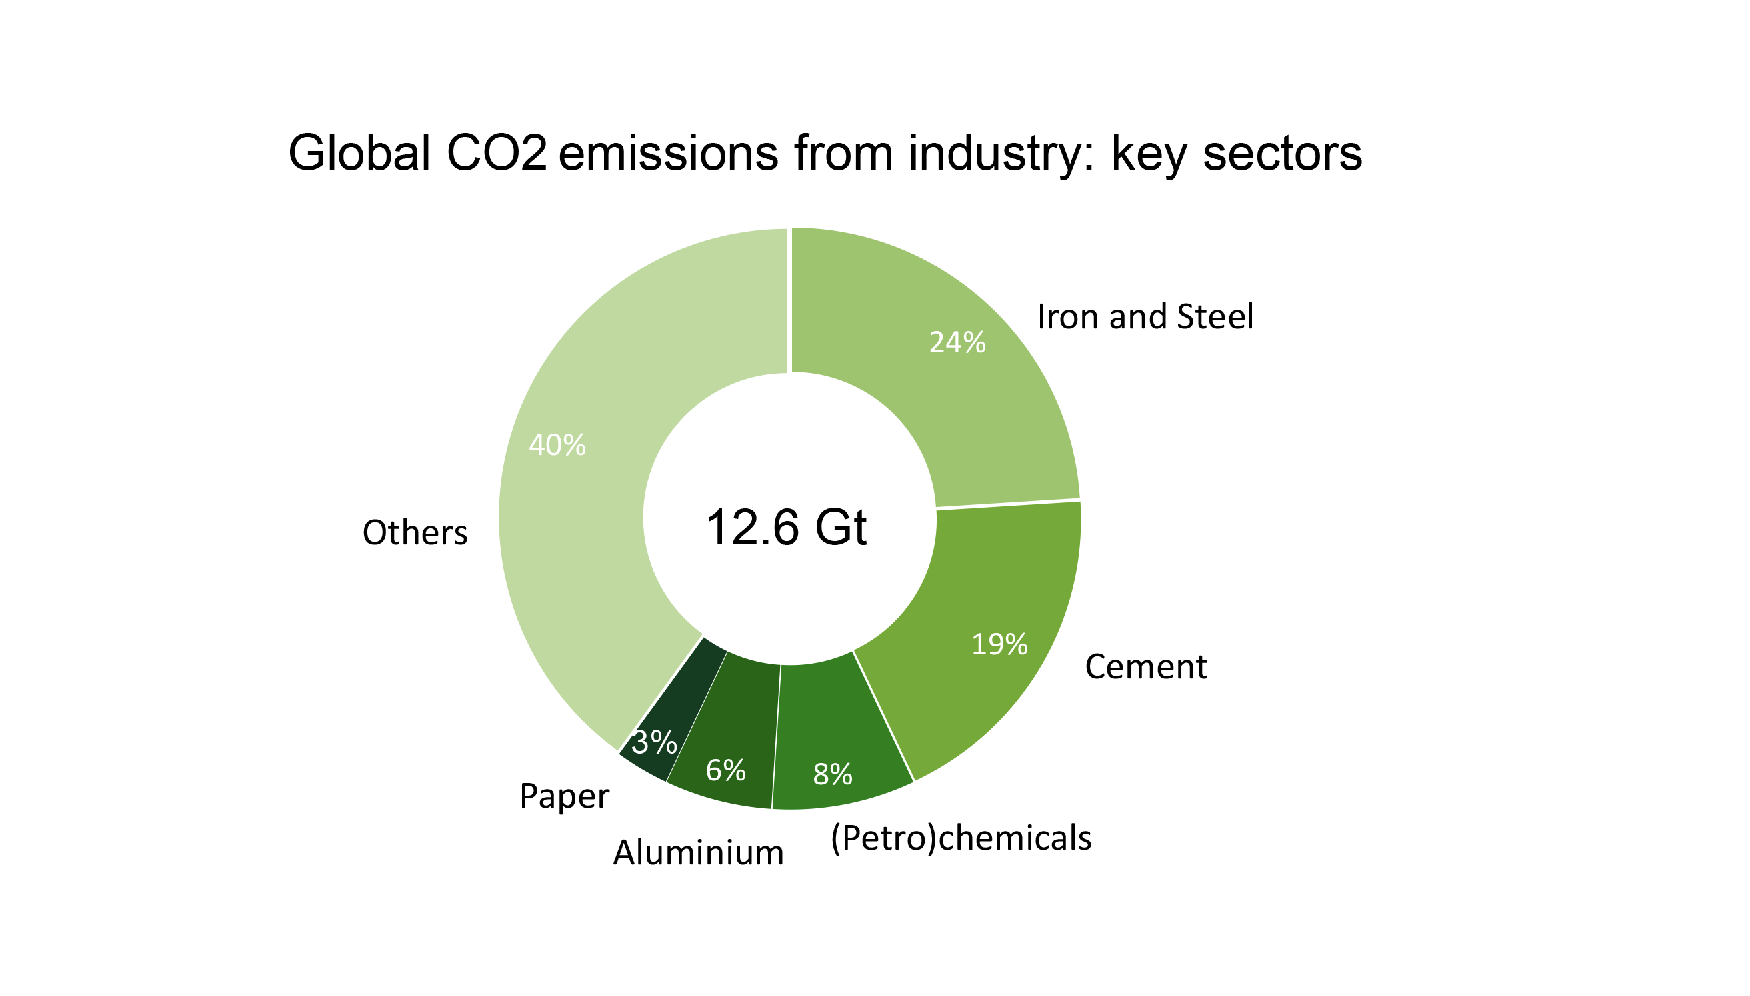 A breakdown of industrial sector emissions, 2014